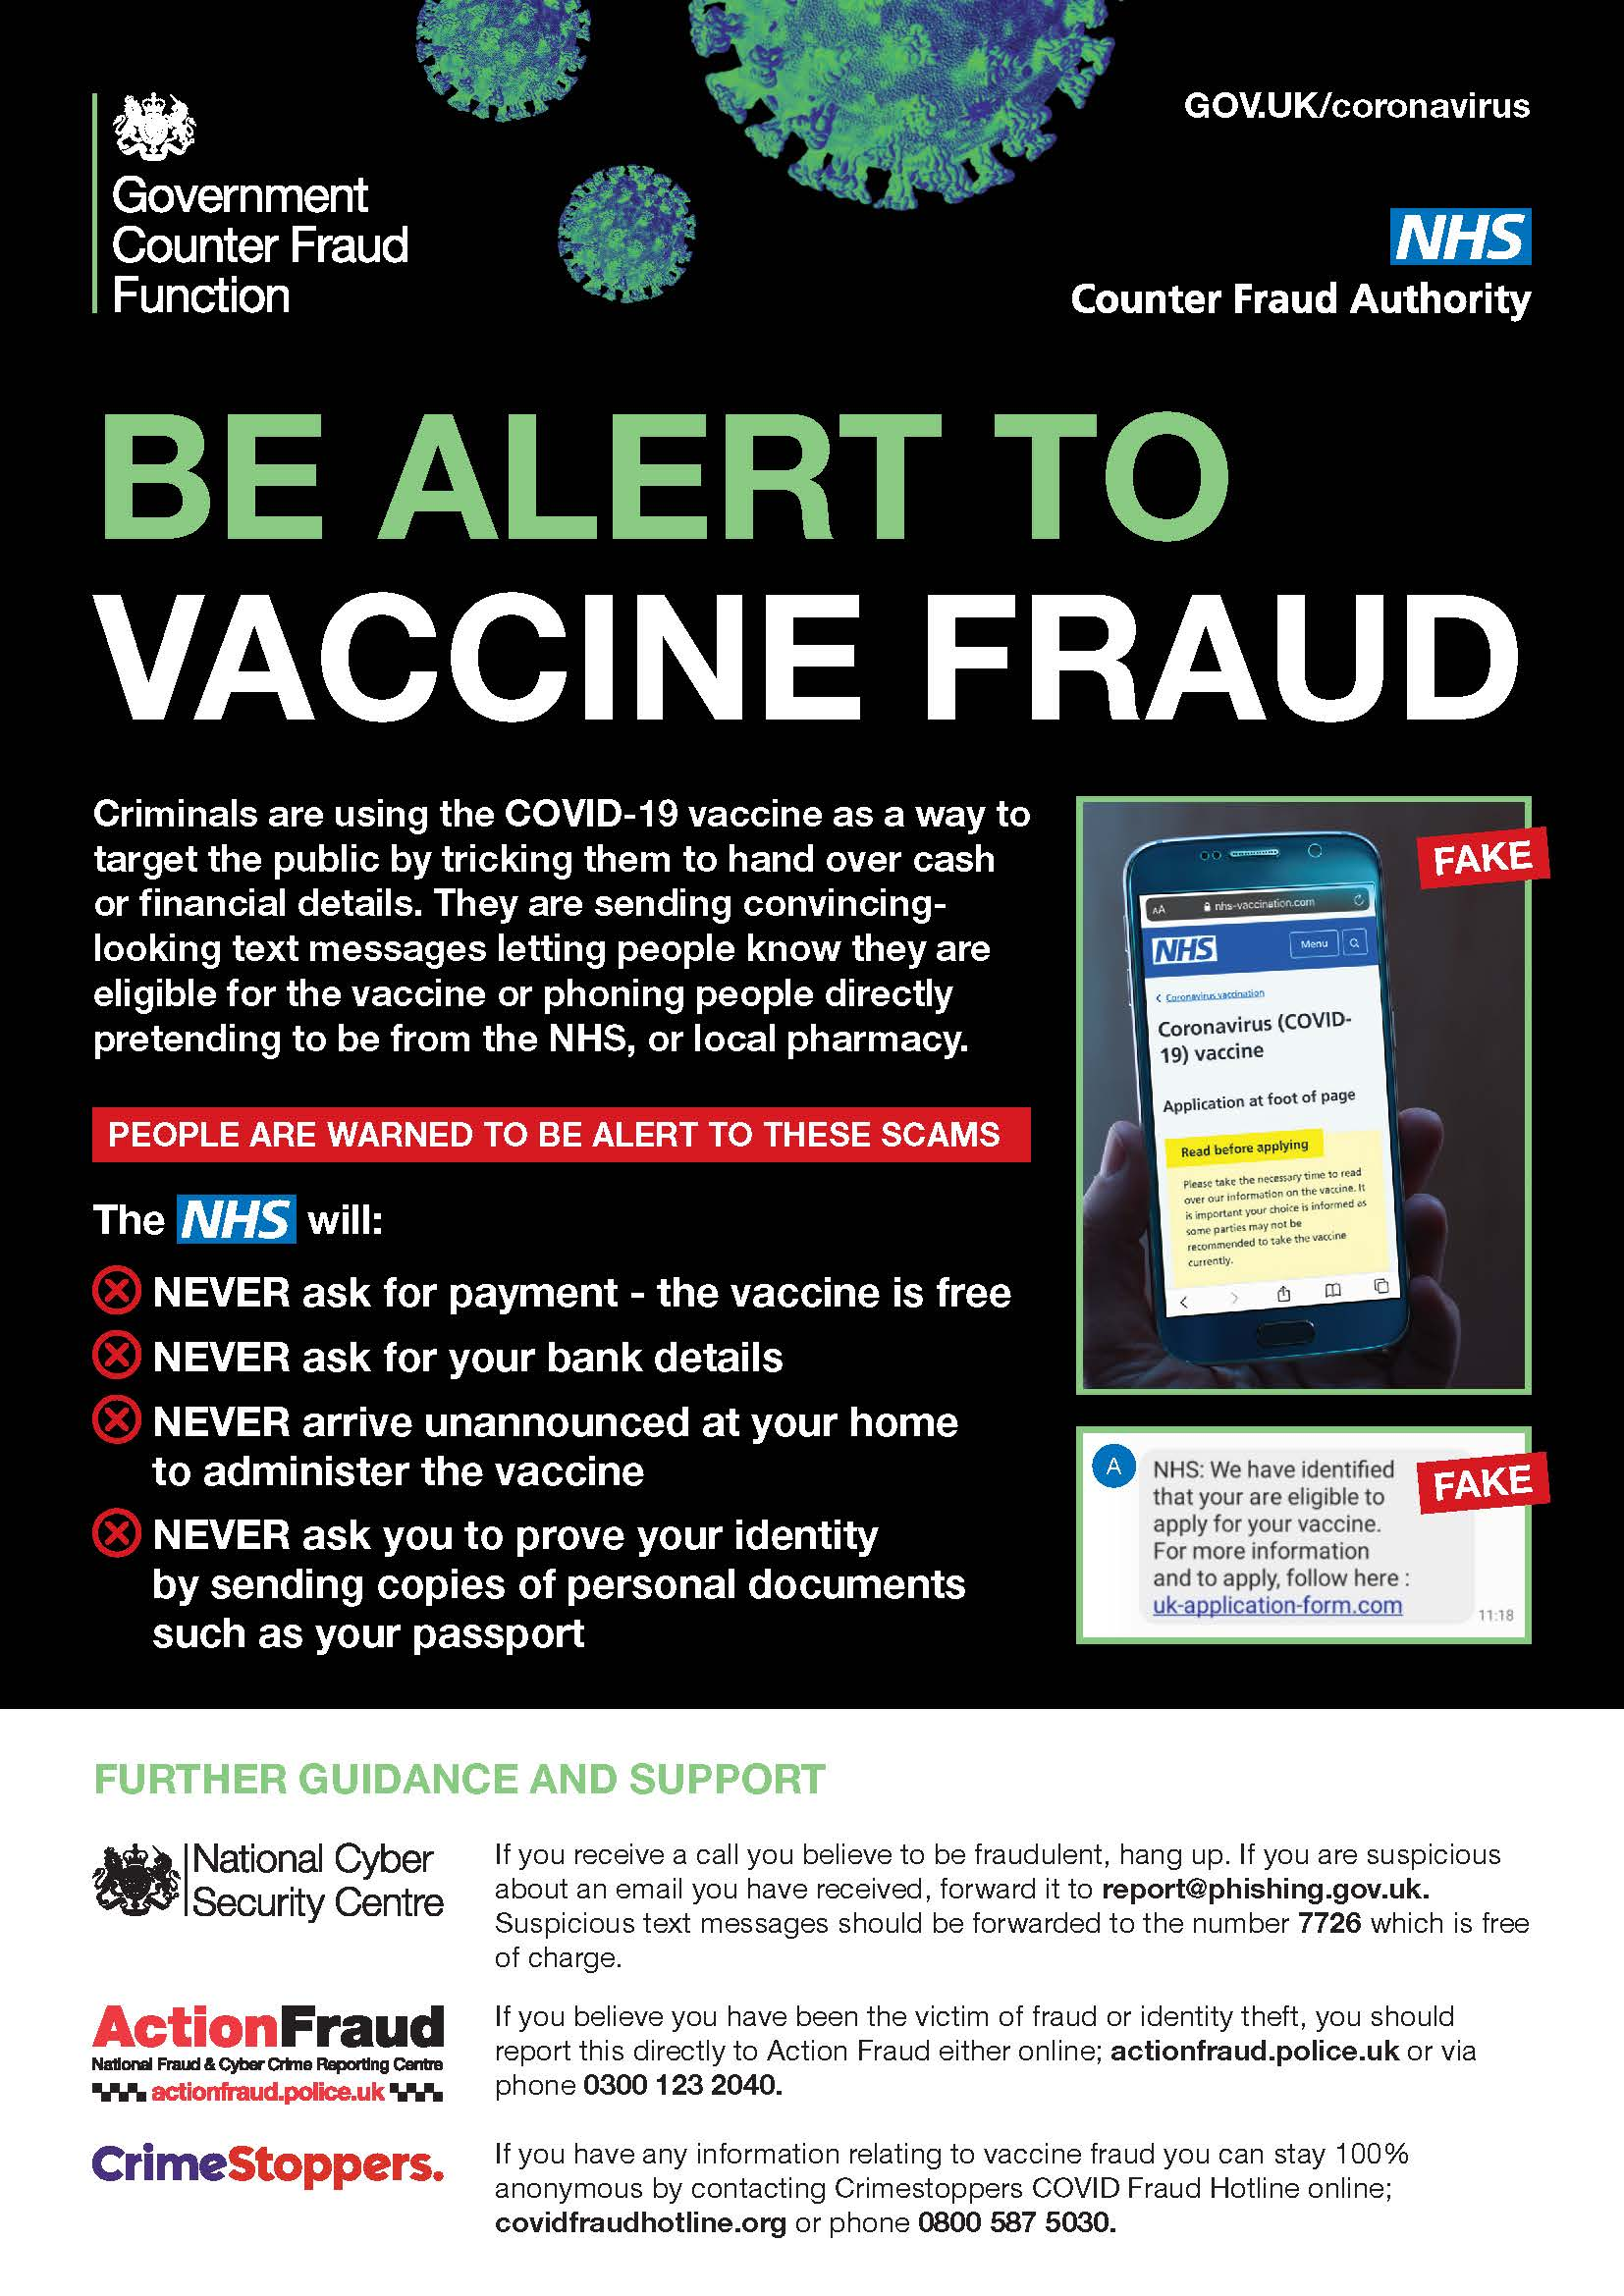 COVID vaccination fraud